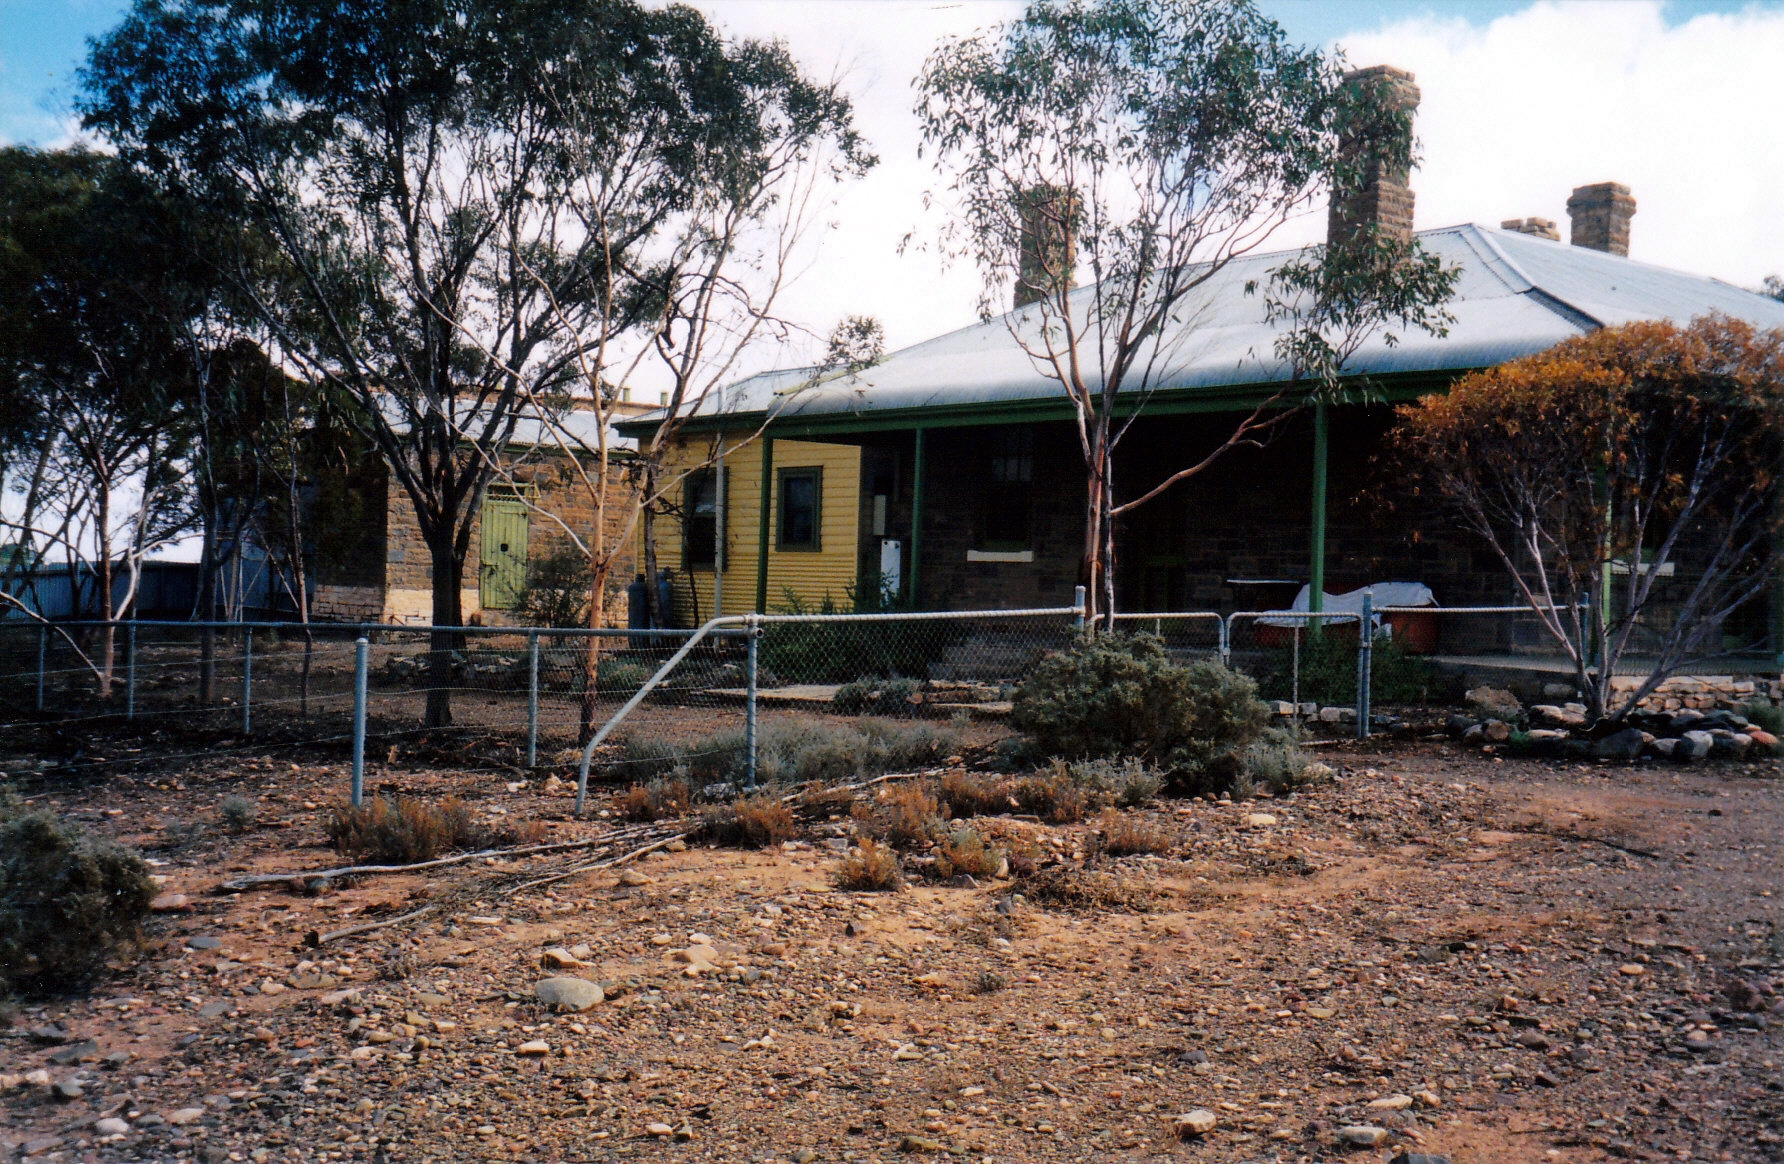 05-23-1999 02 old police station and jail at back.jpg